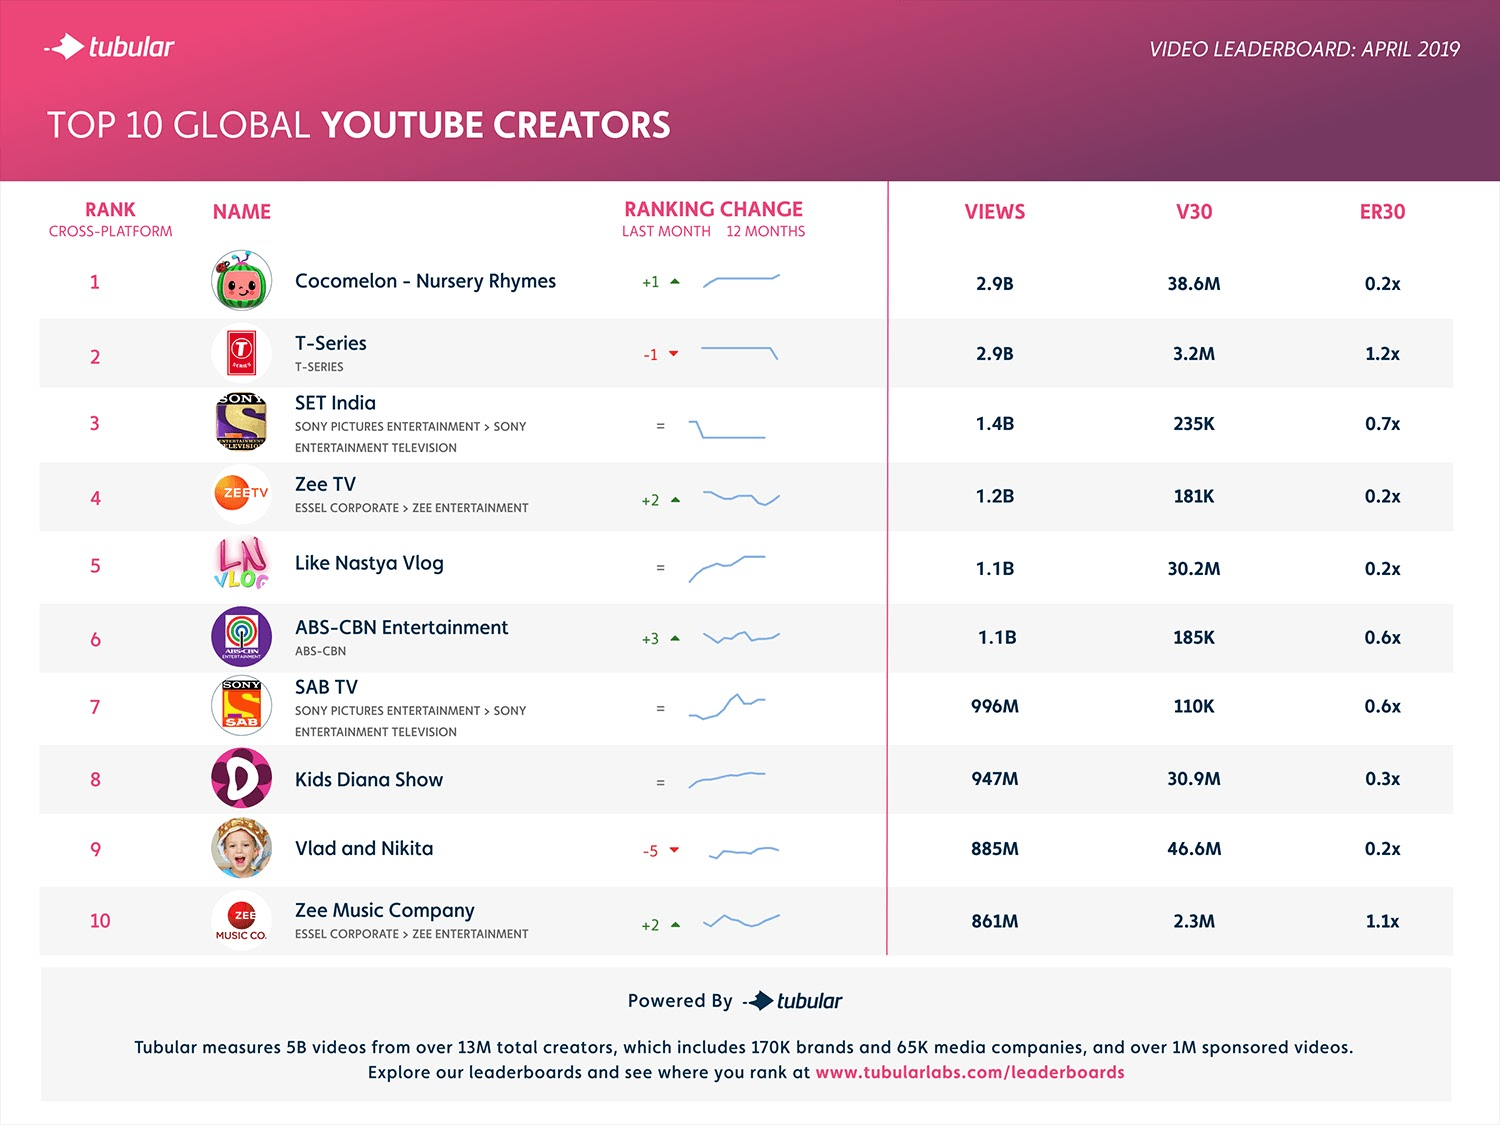 Top 10 Global YouTube Creators